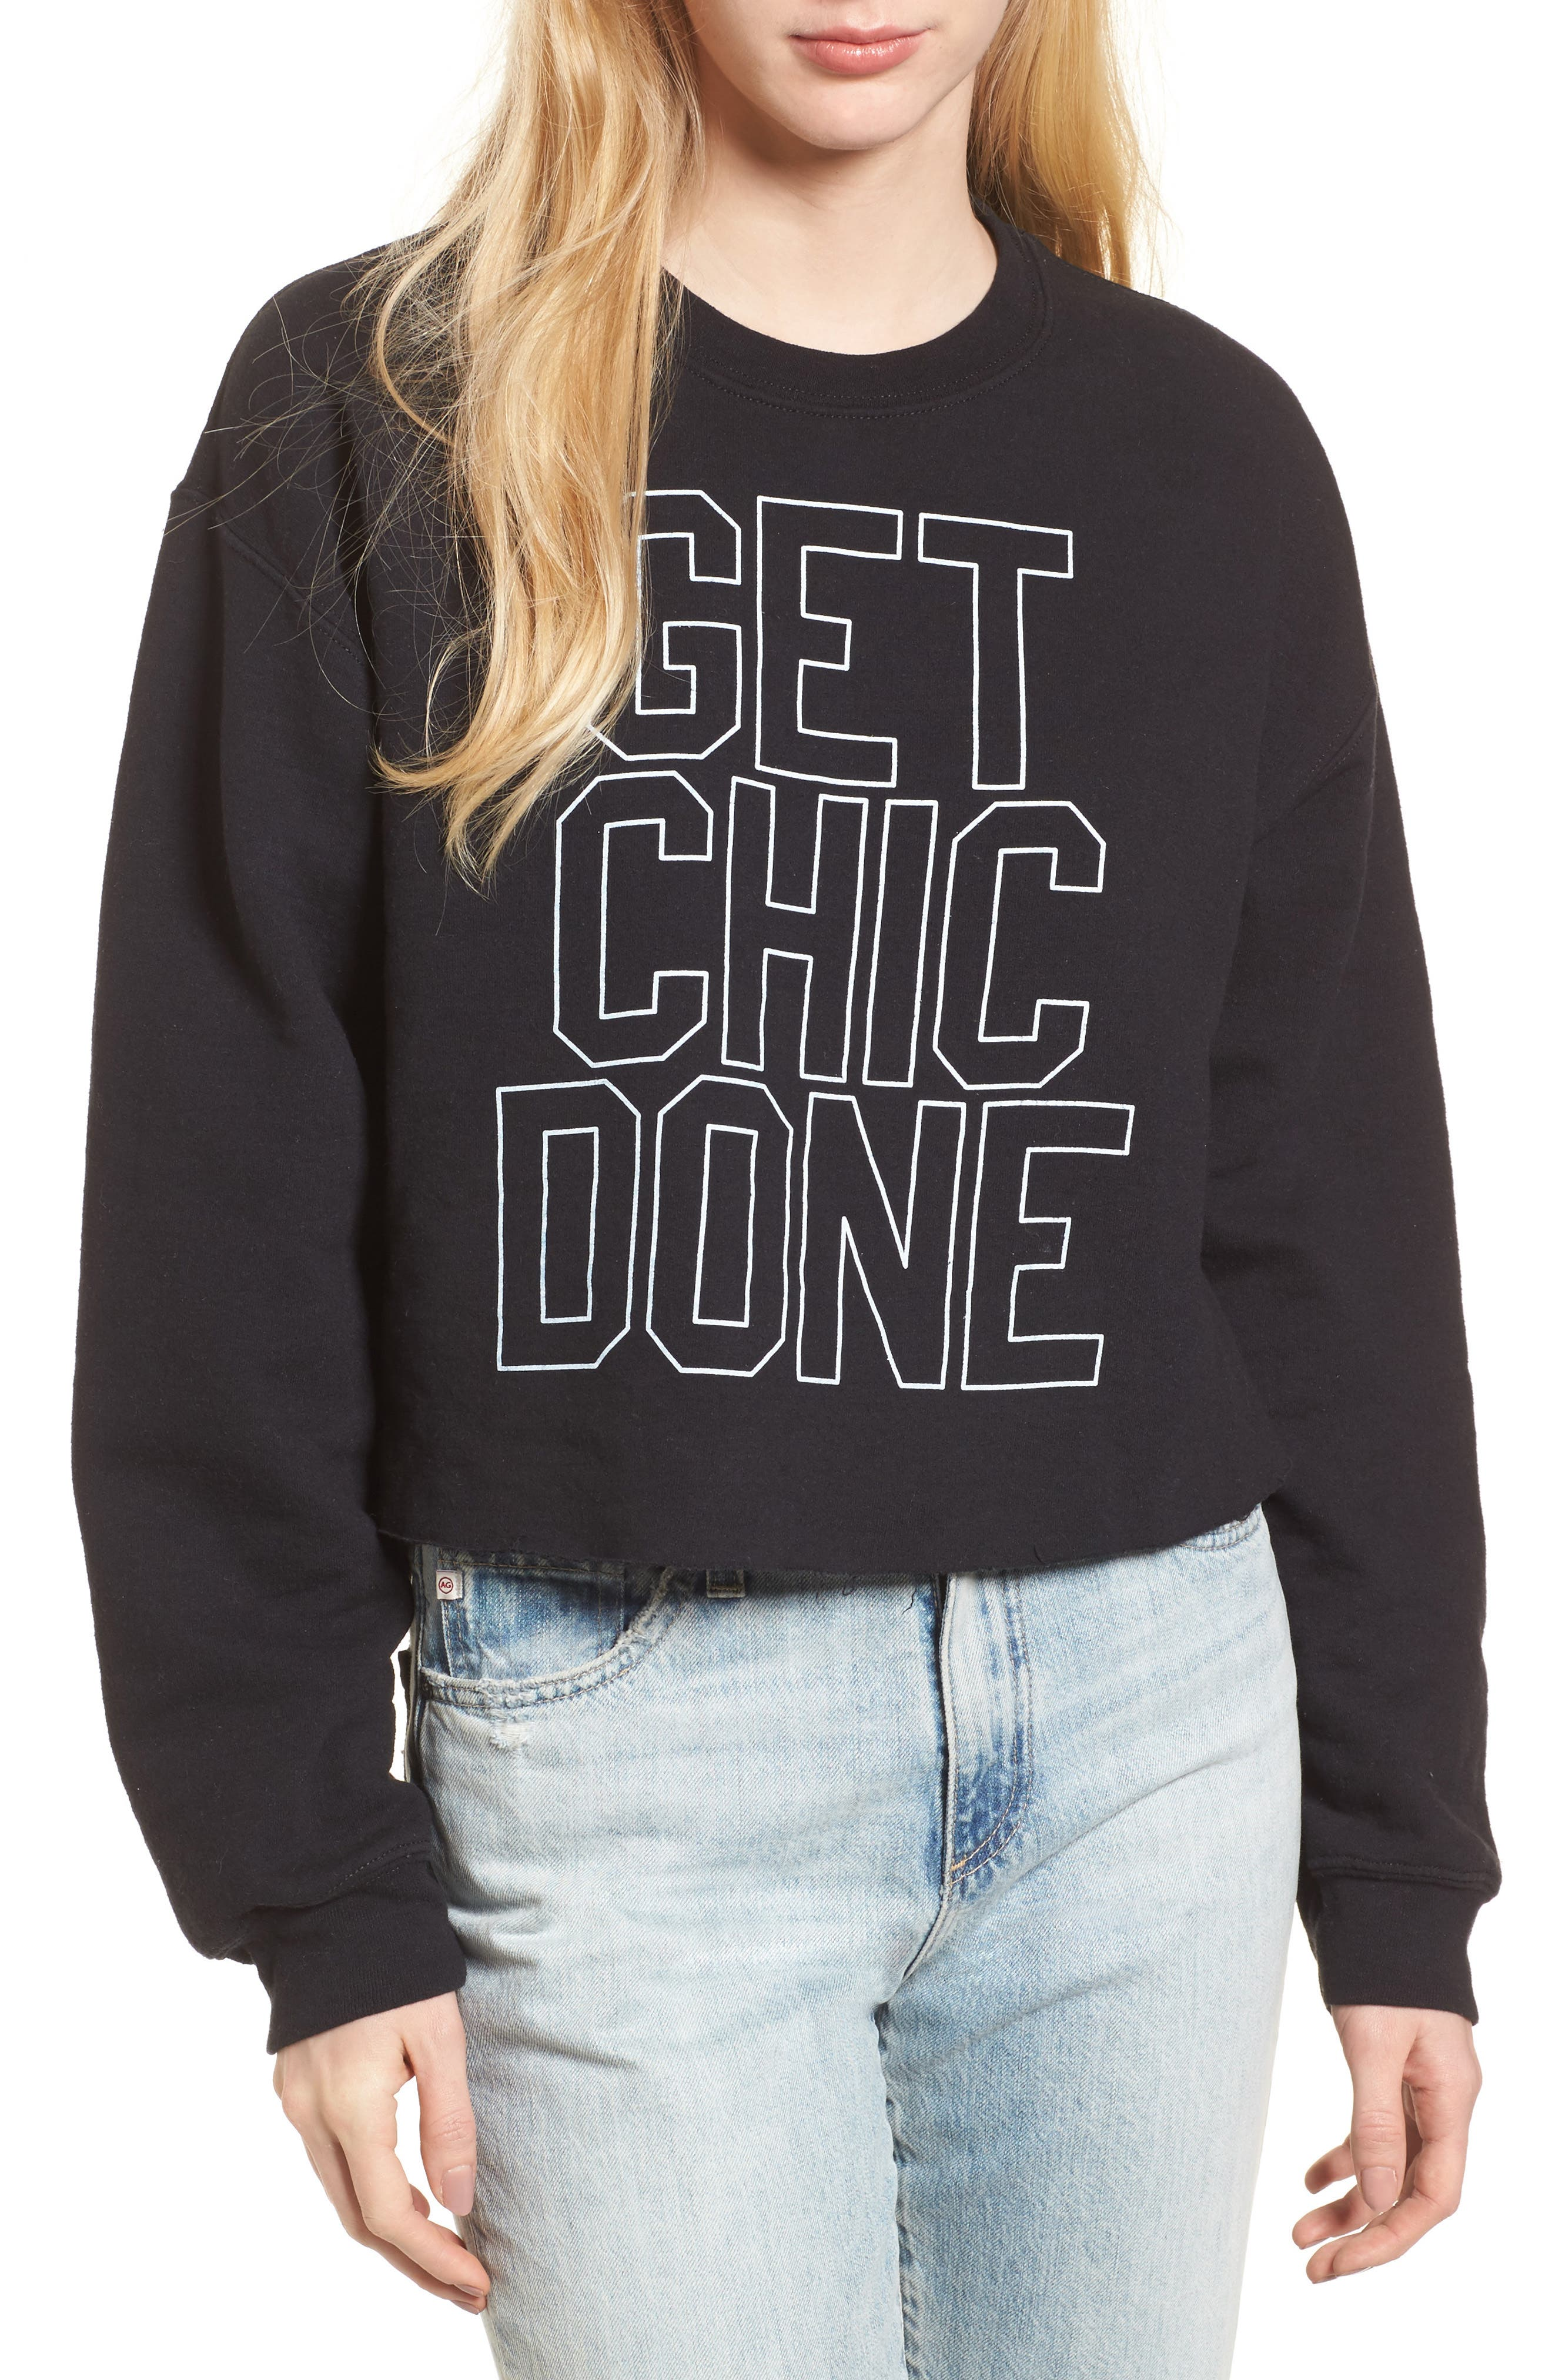 Get Chic Done Sweatshirt,                         Main,                         color, Black